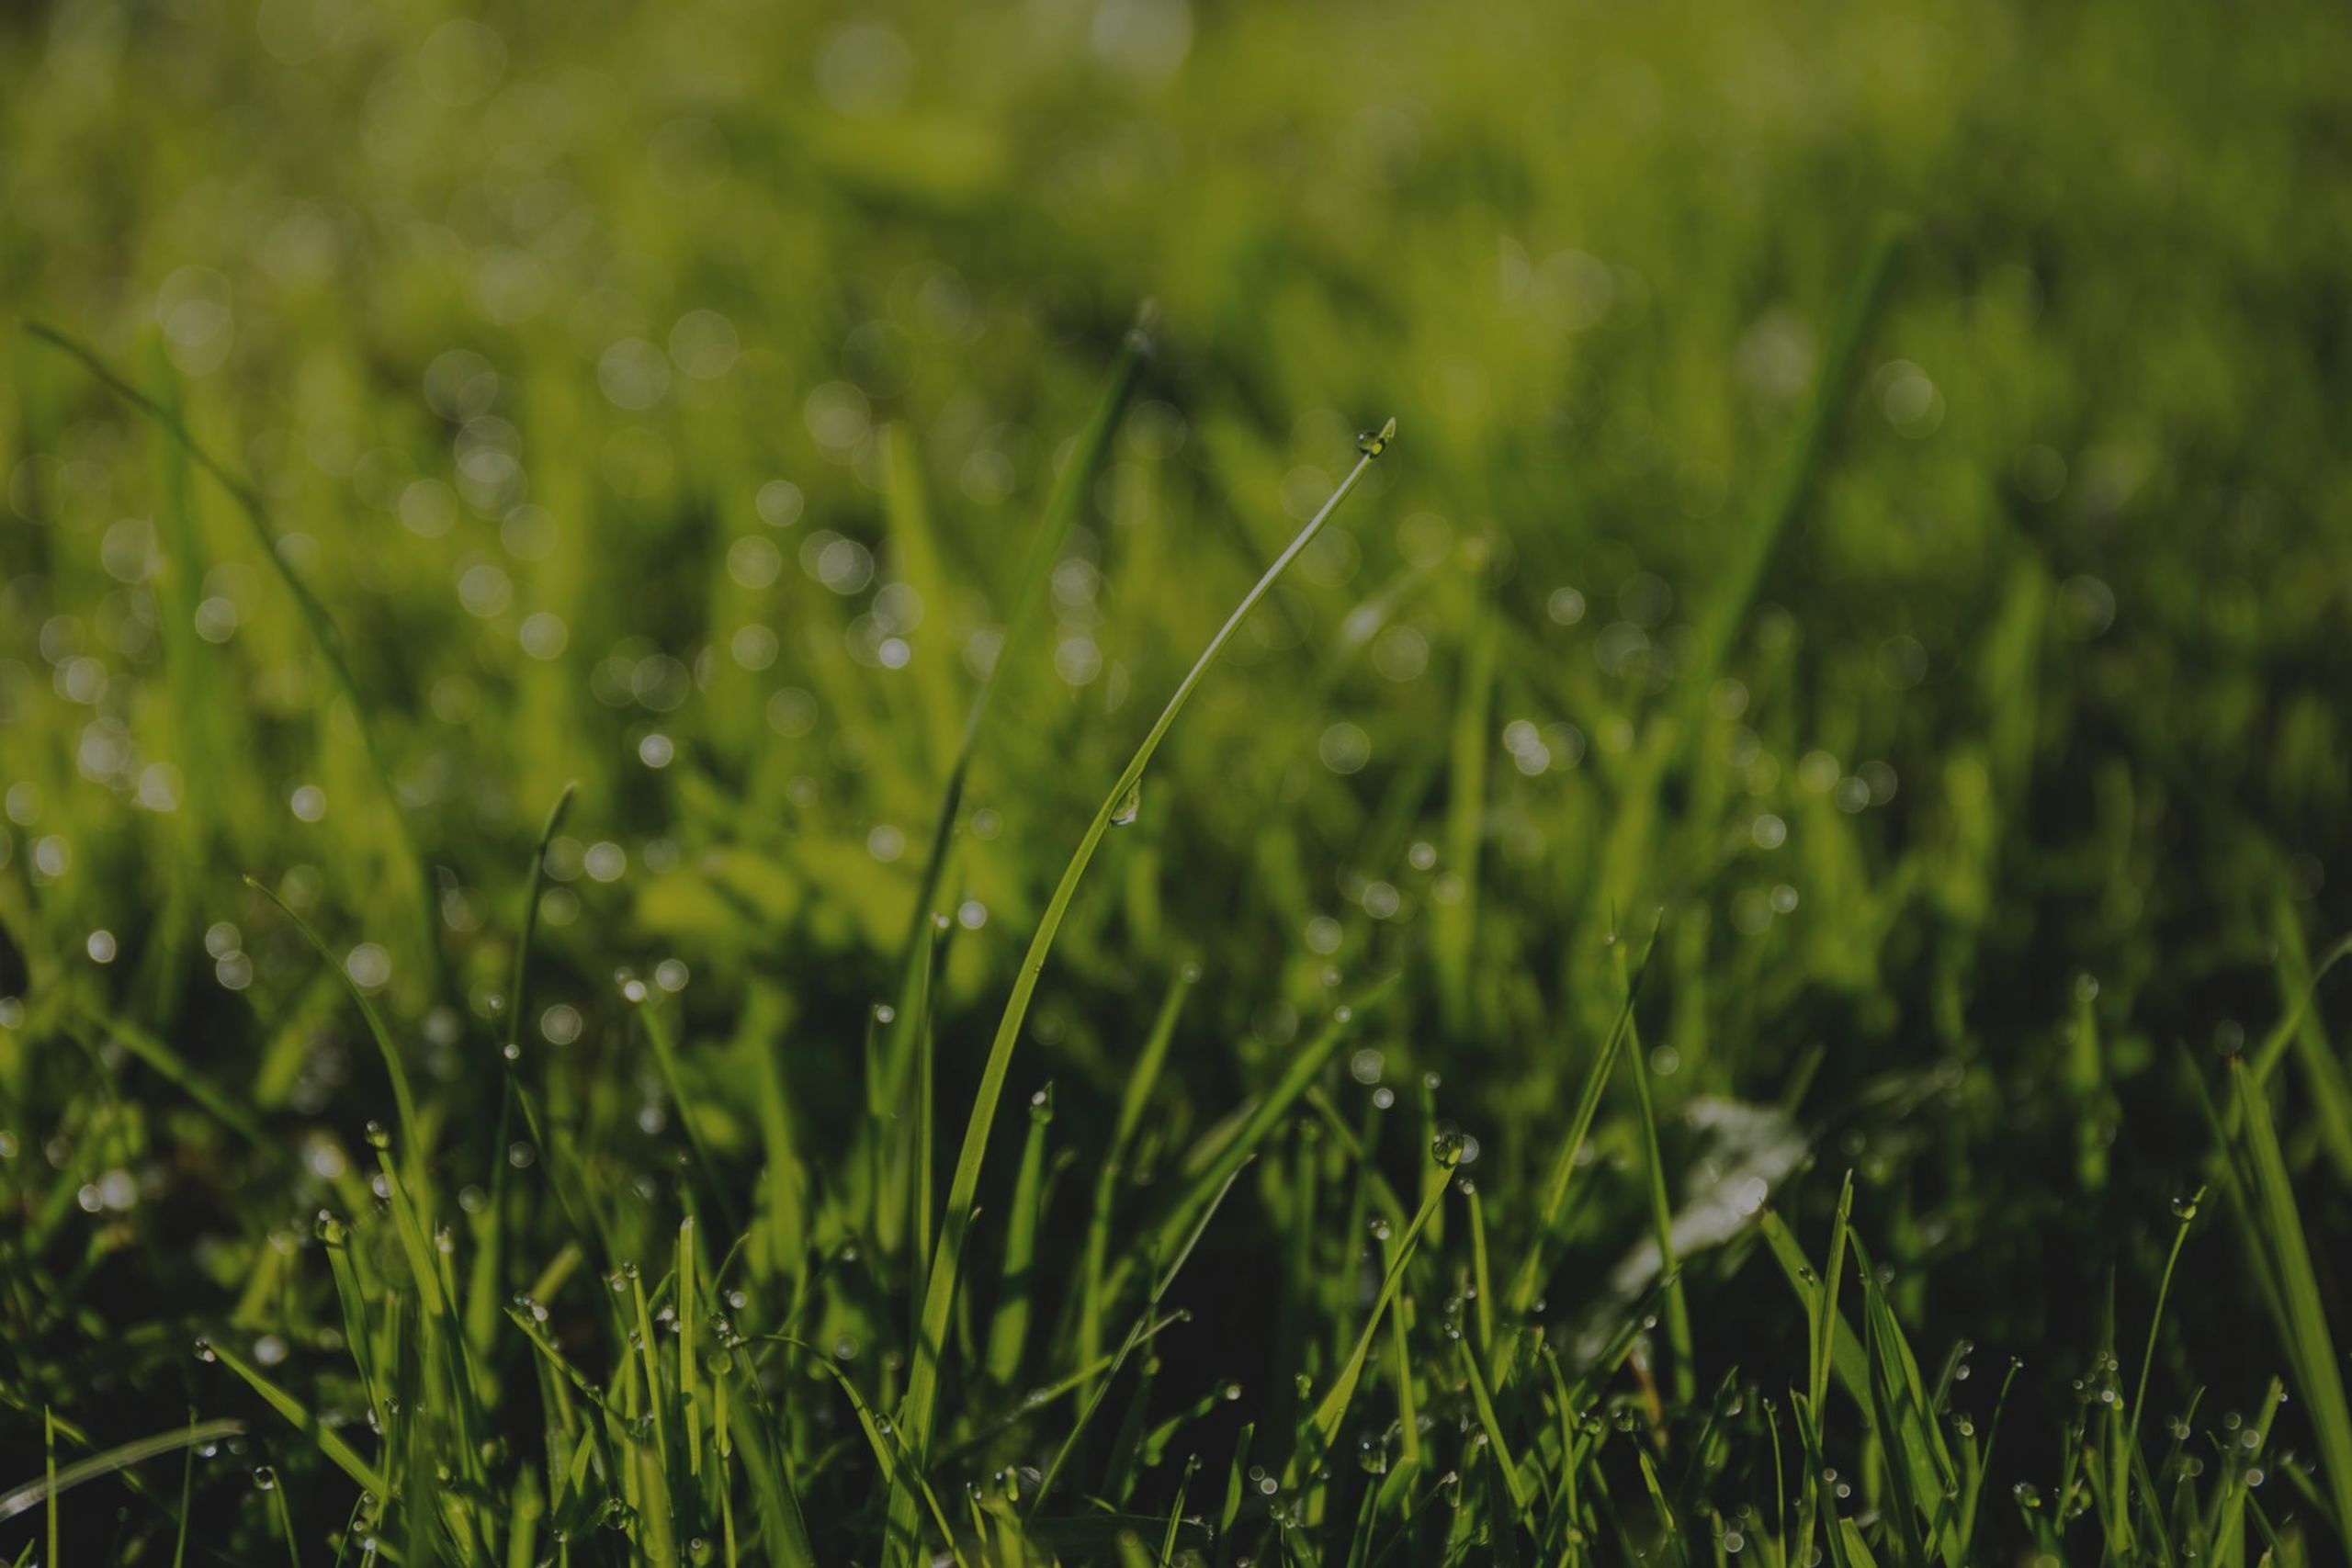 Taking Care of Your Georgia Lawn Without Wasting Resources